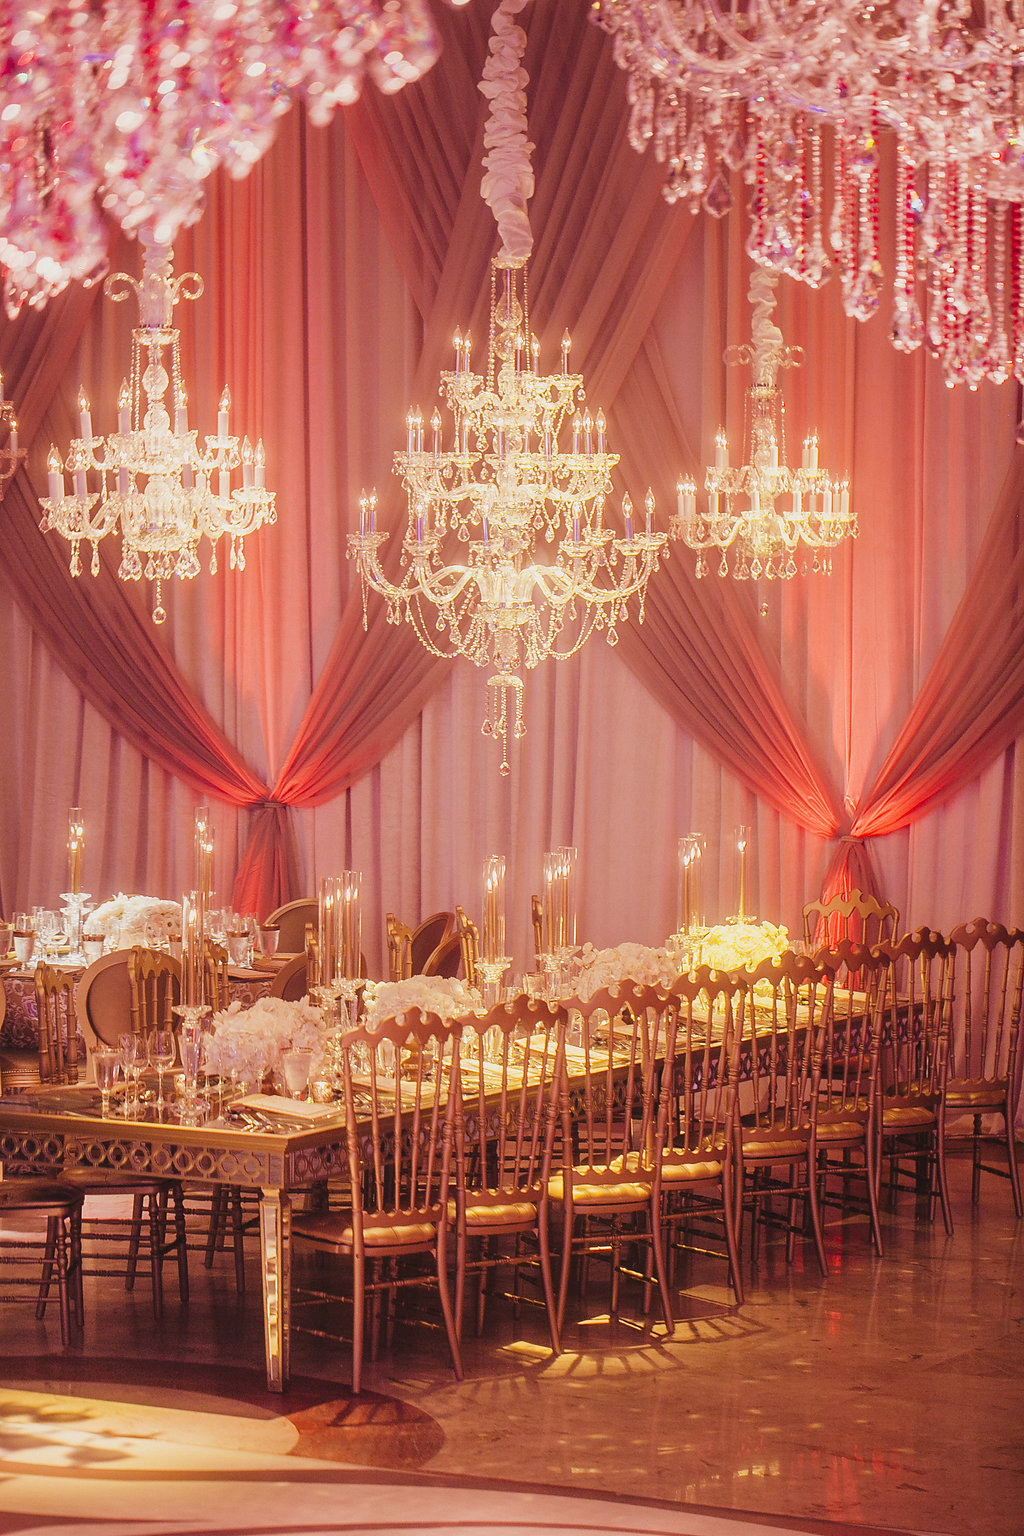 Long table set for dinner in a room wiht draped walls and chandeliers